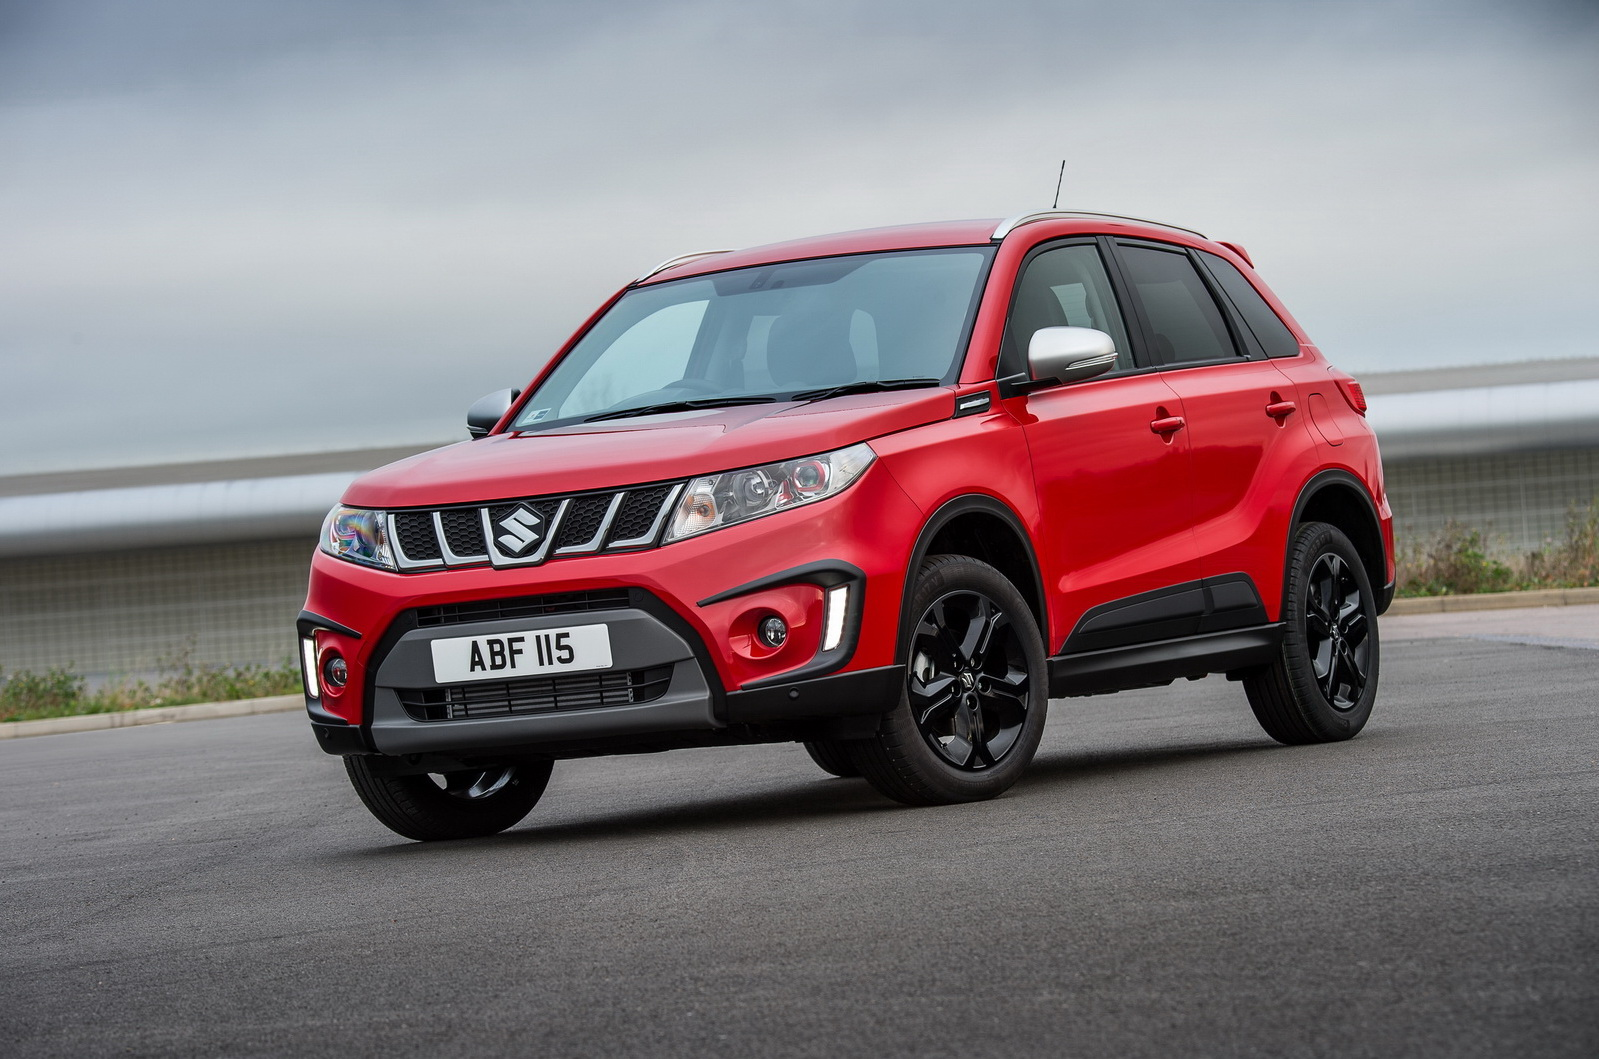 new suzuki vitara s debuts with turbo boosterjet 140ps engine carscoops. Black Bedroom Furniture Sets. Home Design Ideas